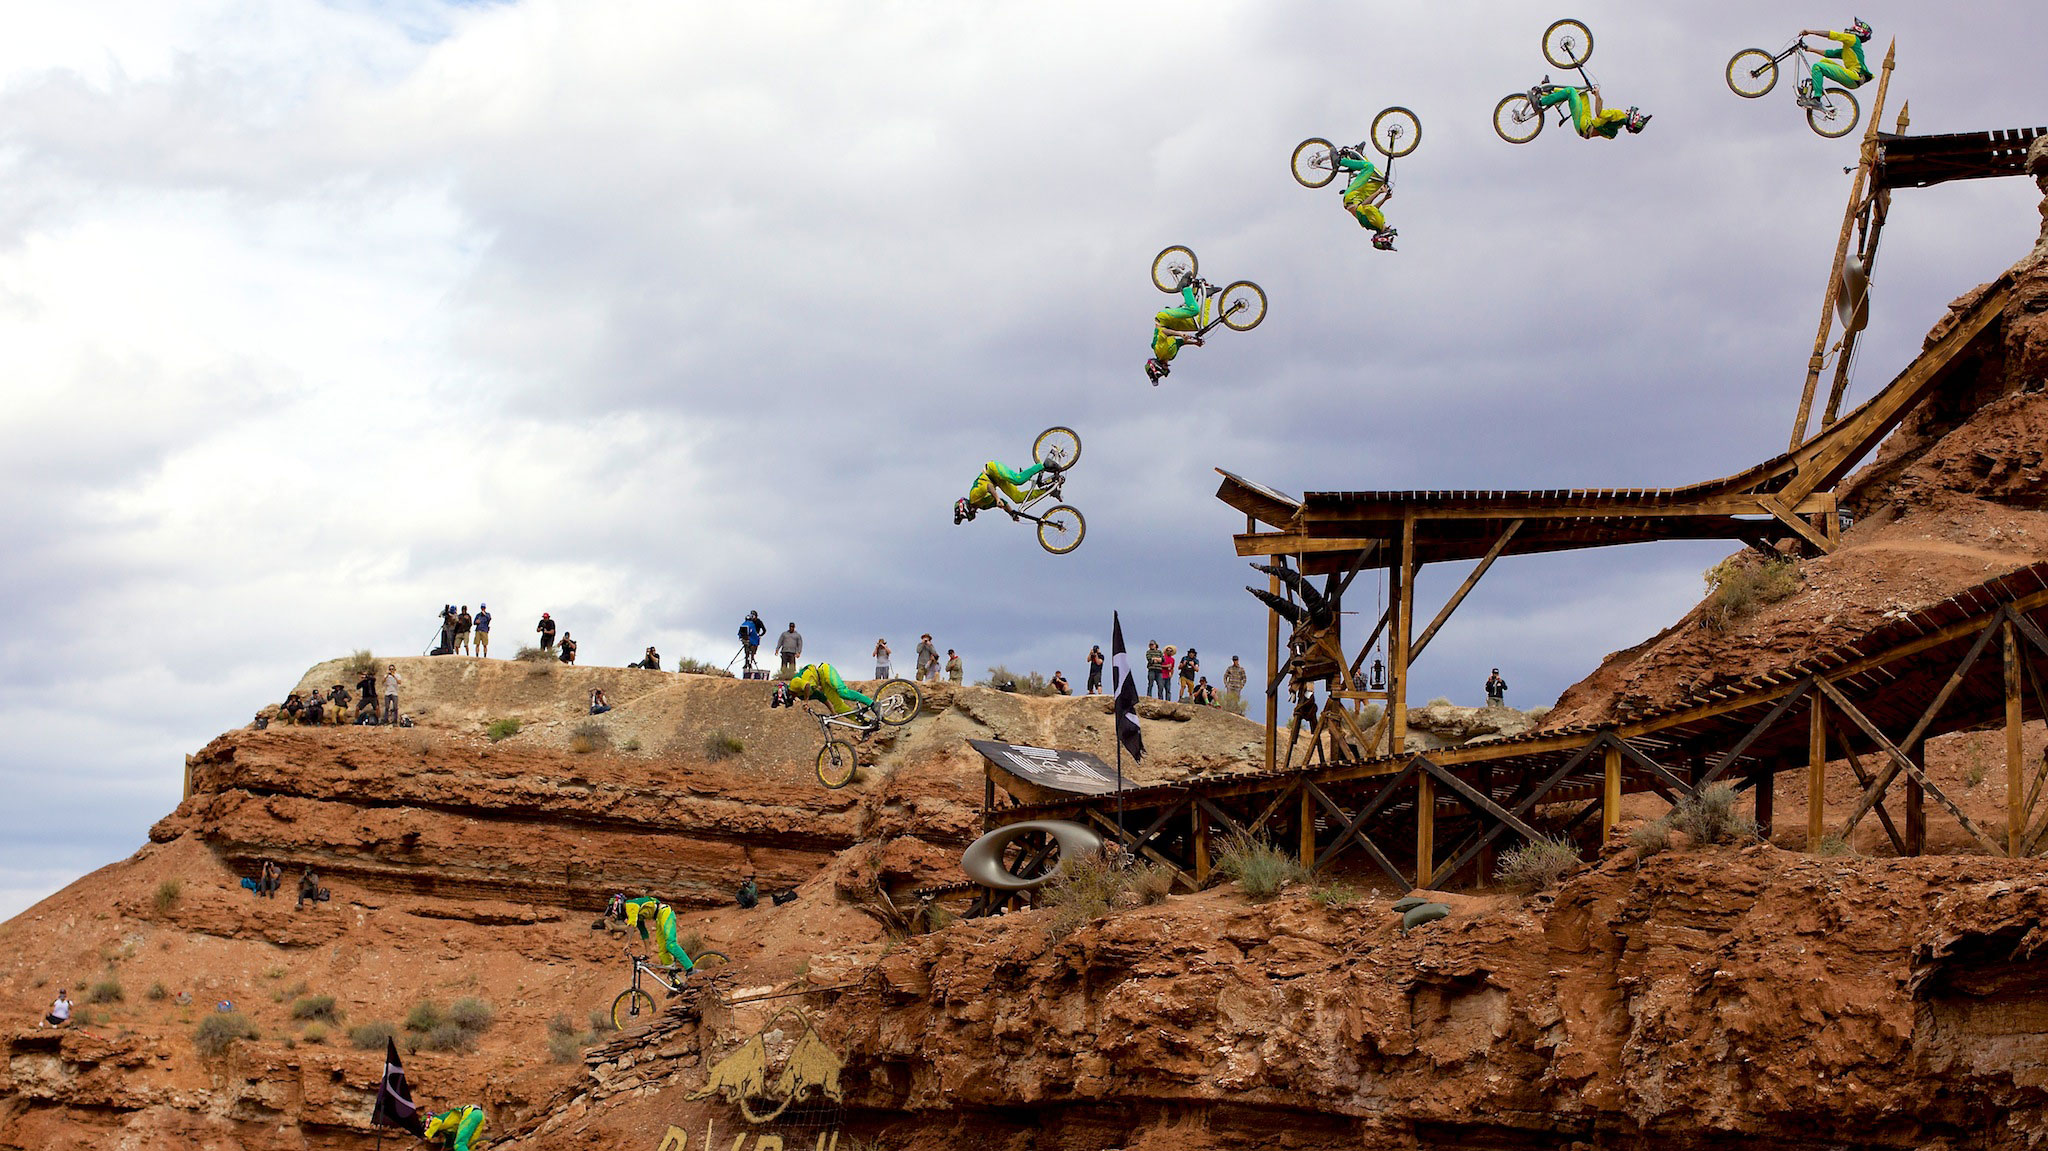 Cam Zink launches a 78-foot step-down backflip, an unofficial record, on his way to a third-place finish at the 2013 Red Bull Rampage outside Zion National Park in Utah.